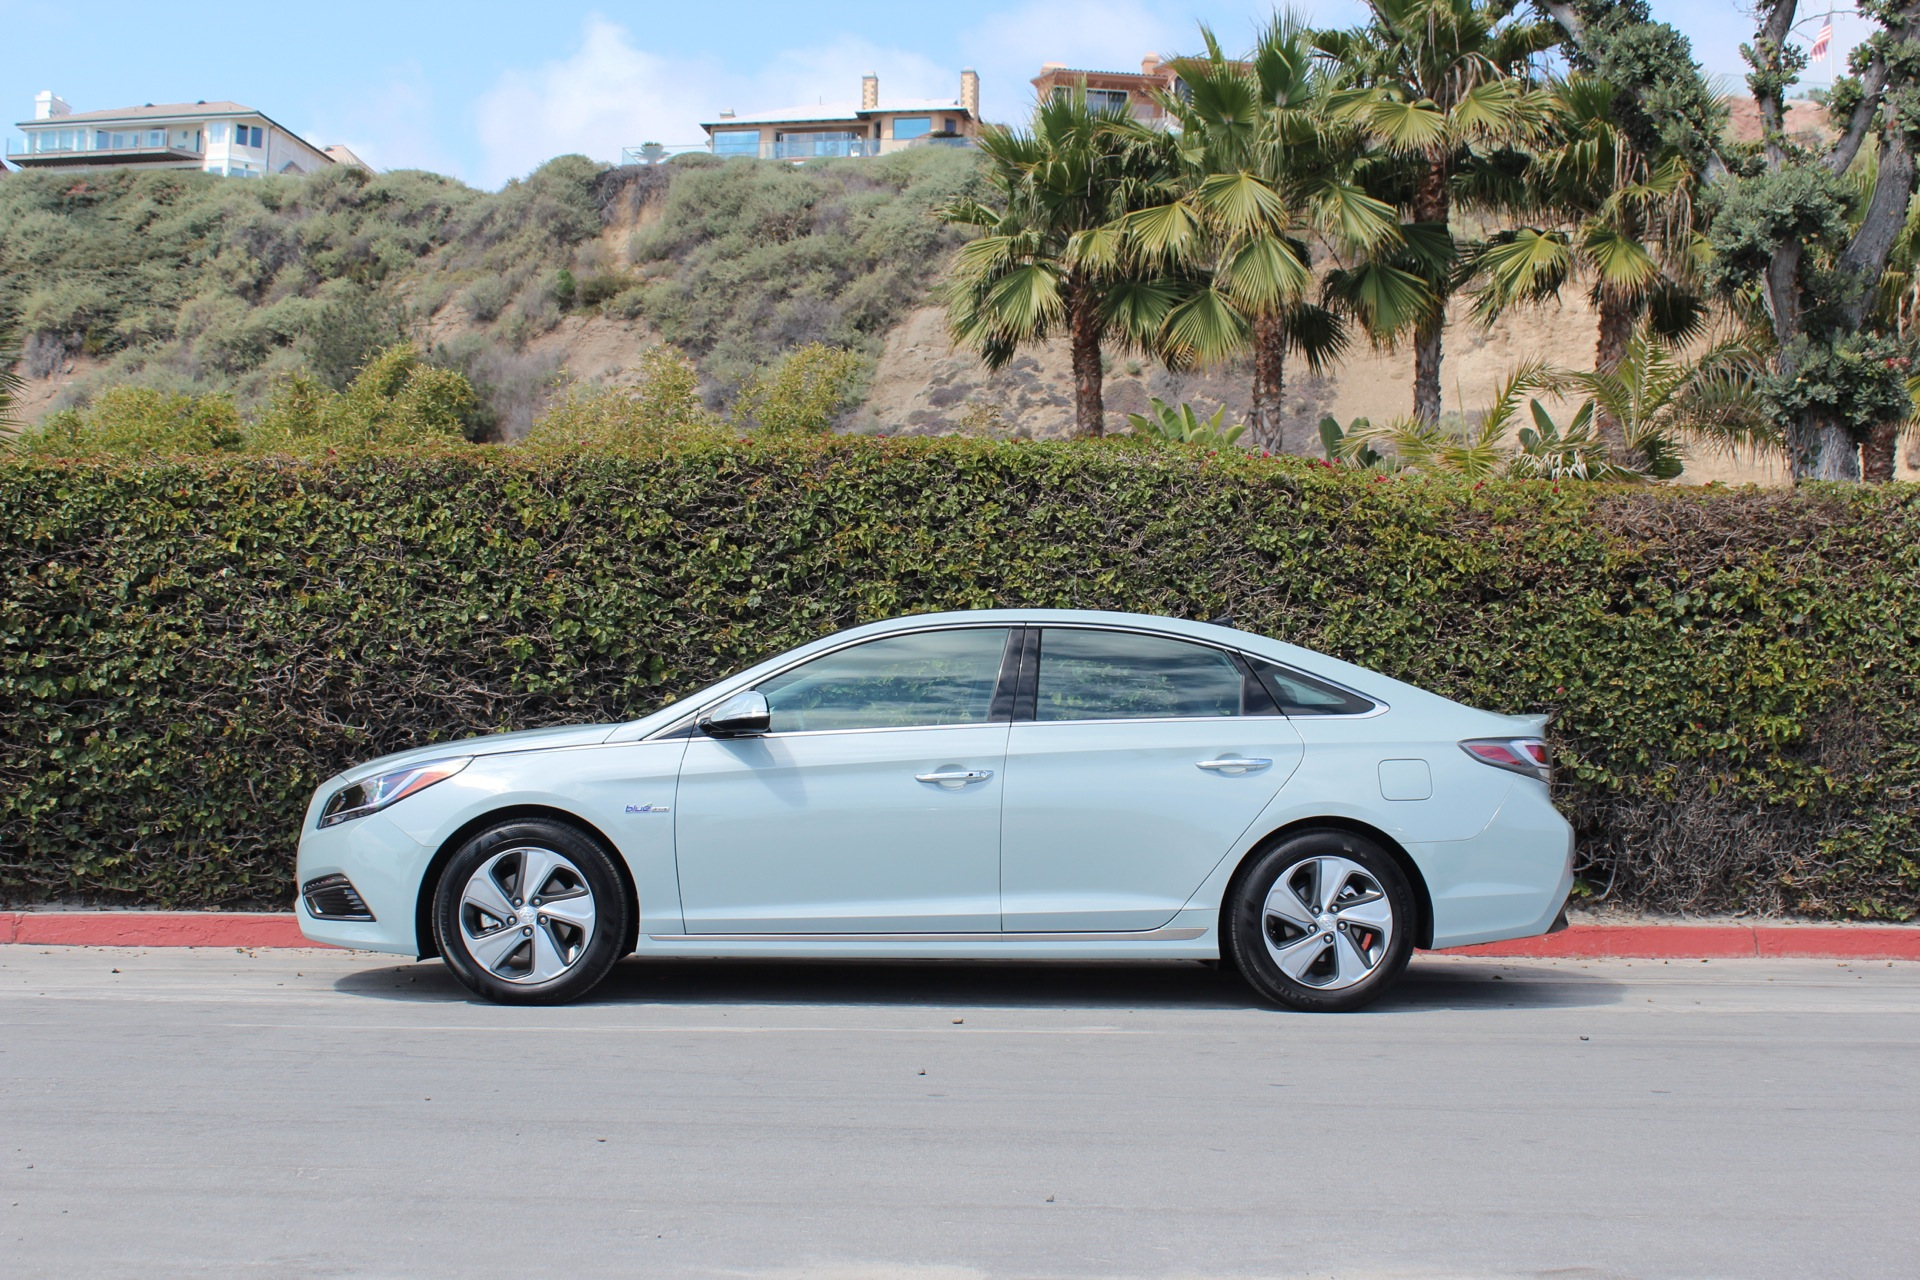 2016 hyundai sonata hybrid and plug in hybrid first drive page 4. Black Bedroom Furniture Sets. Home Design Ideas